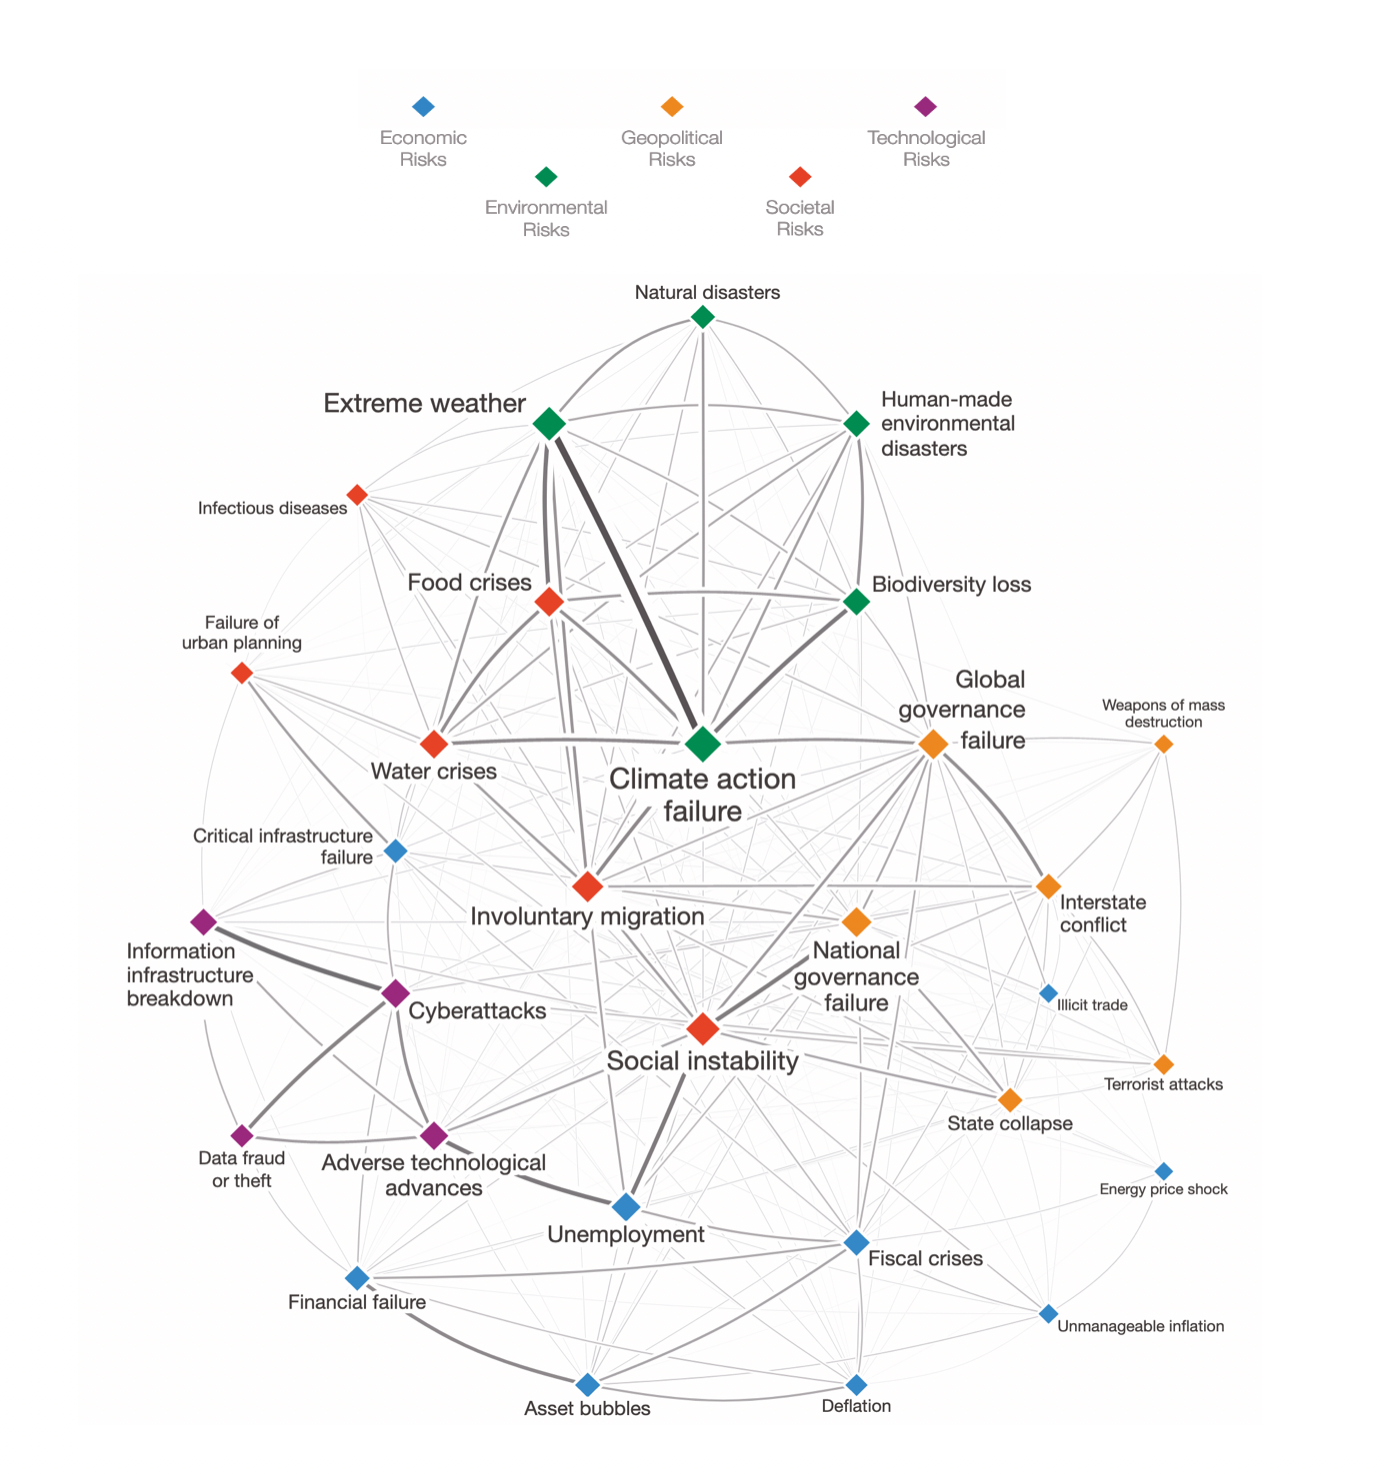 Global crisis interconnections